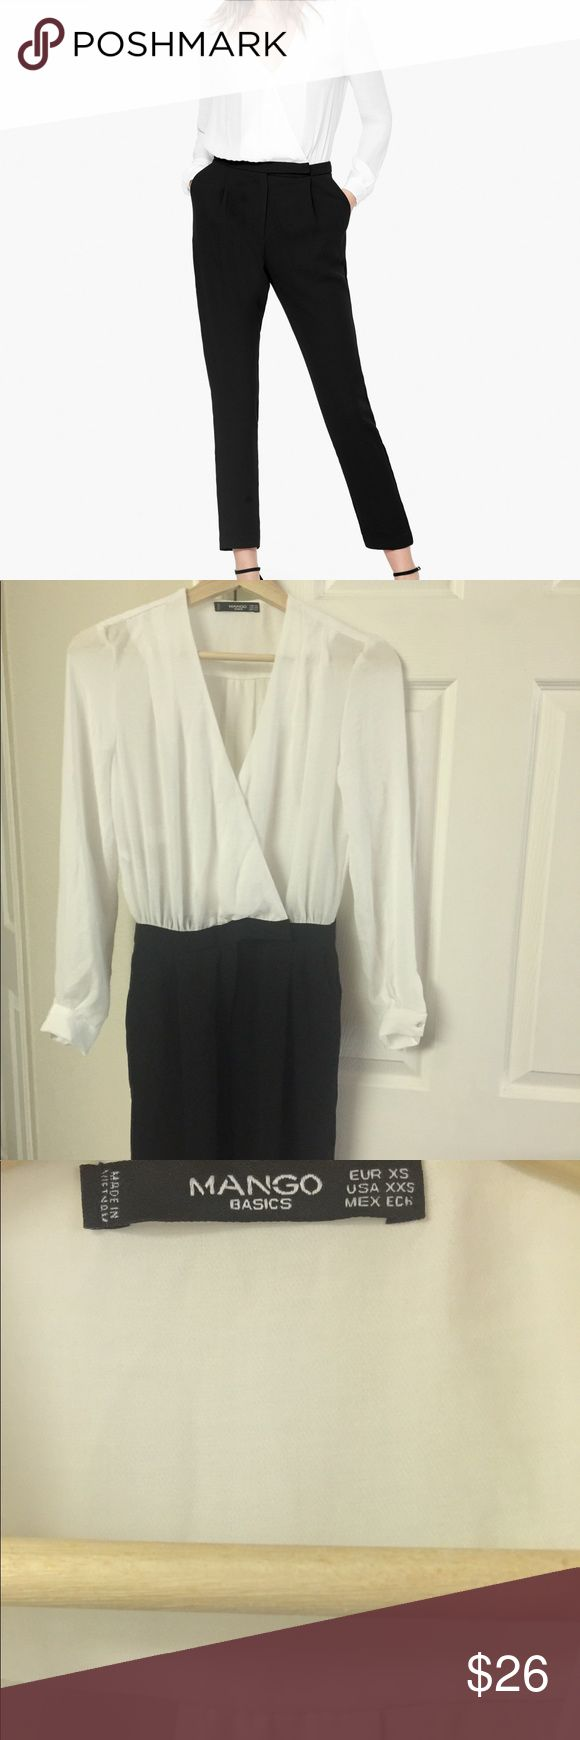 NEW MANGO Black&White Long Sleeve Jumpsuit Beautiful Mango Jumpsuit New without tags Please ask any question you may have before purchasing, all sales are final Mango Pants Jumpsuits & Rompers